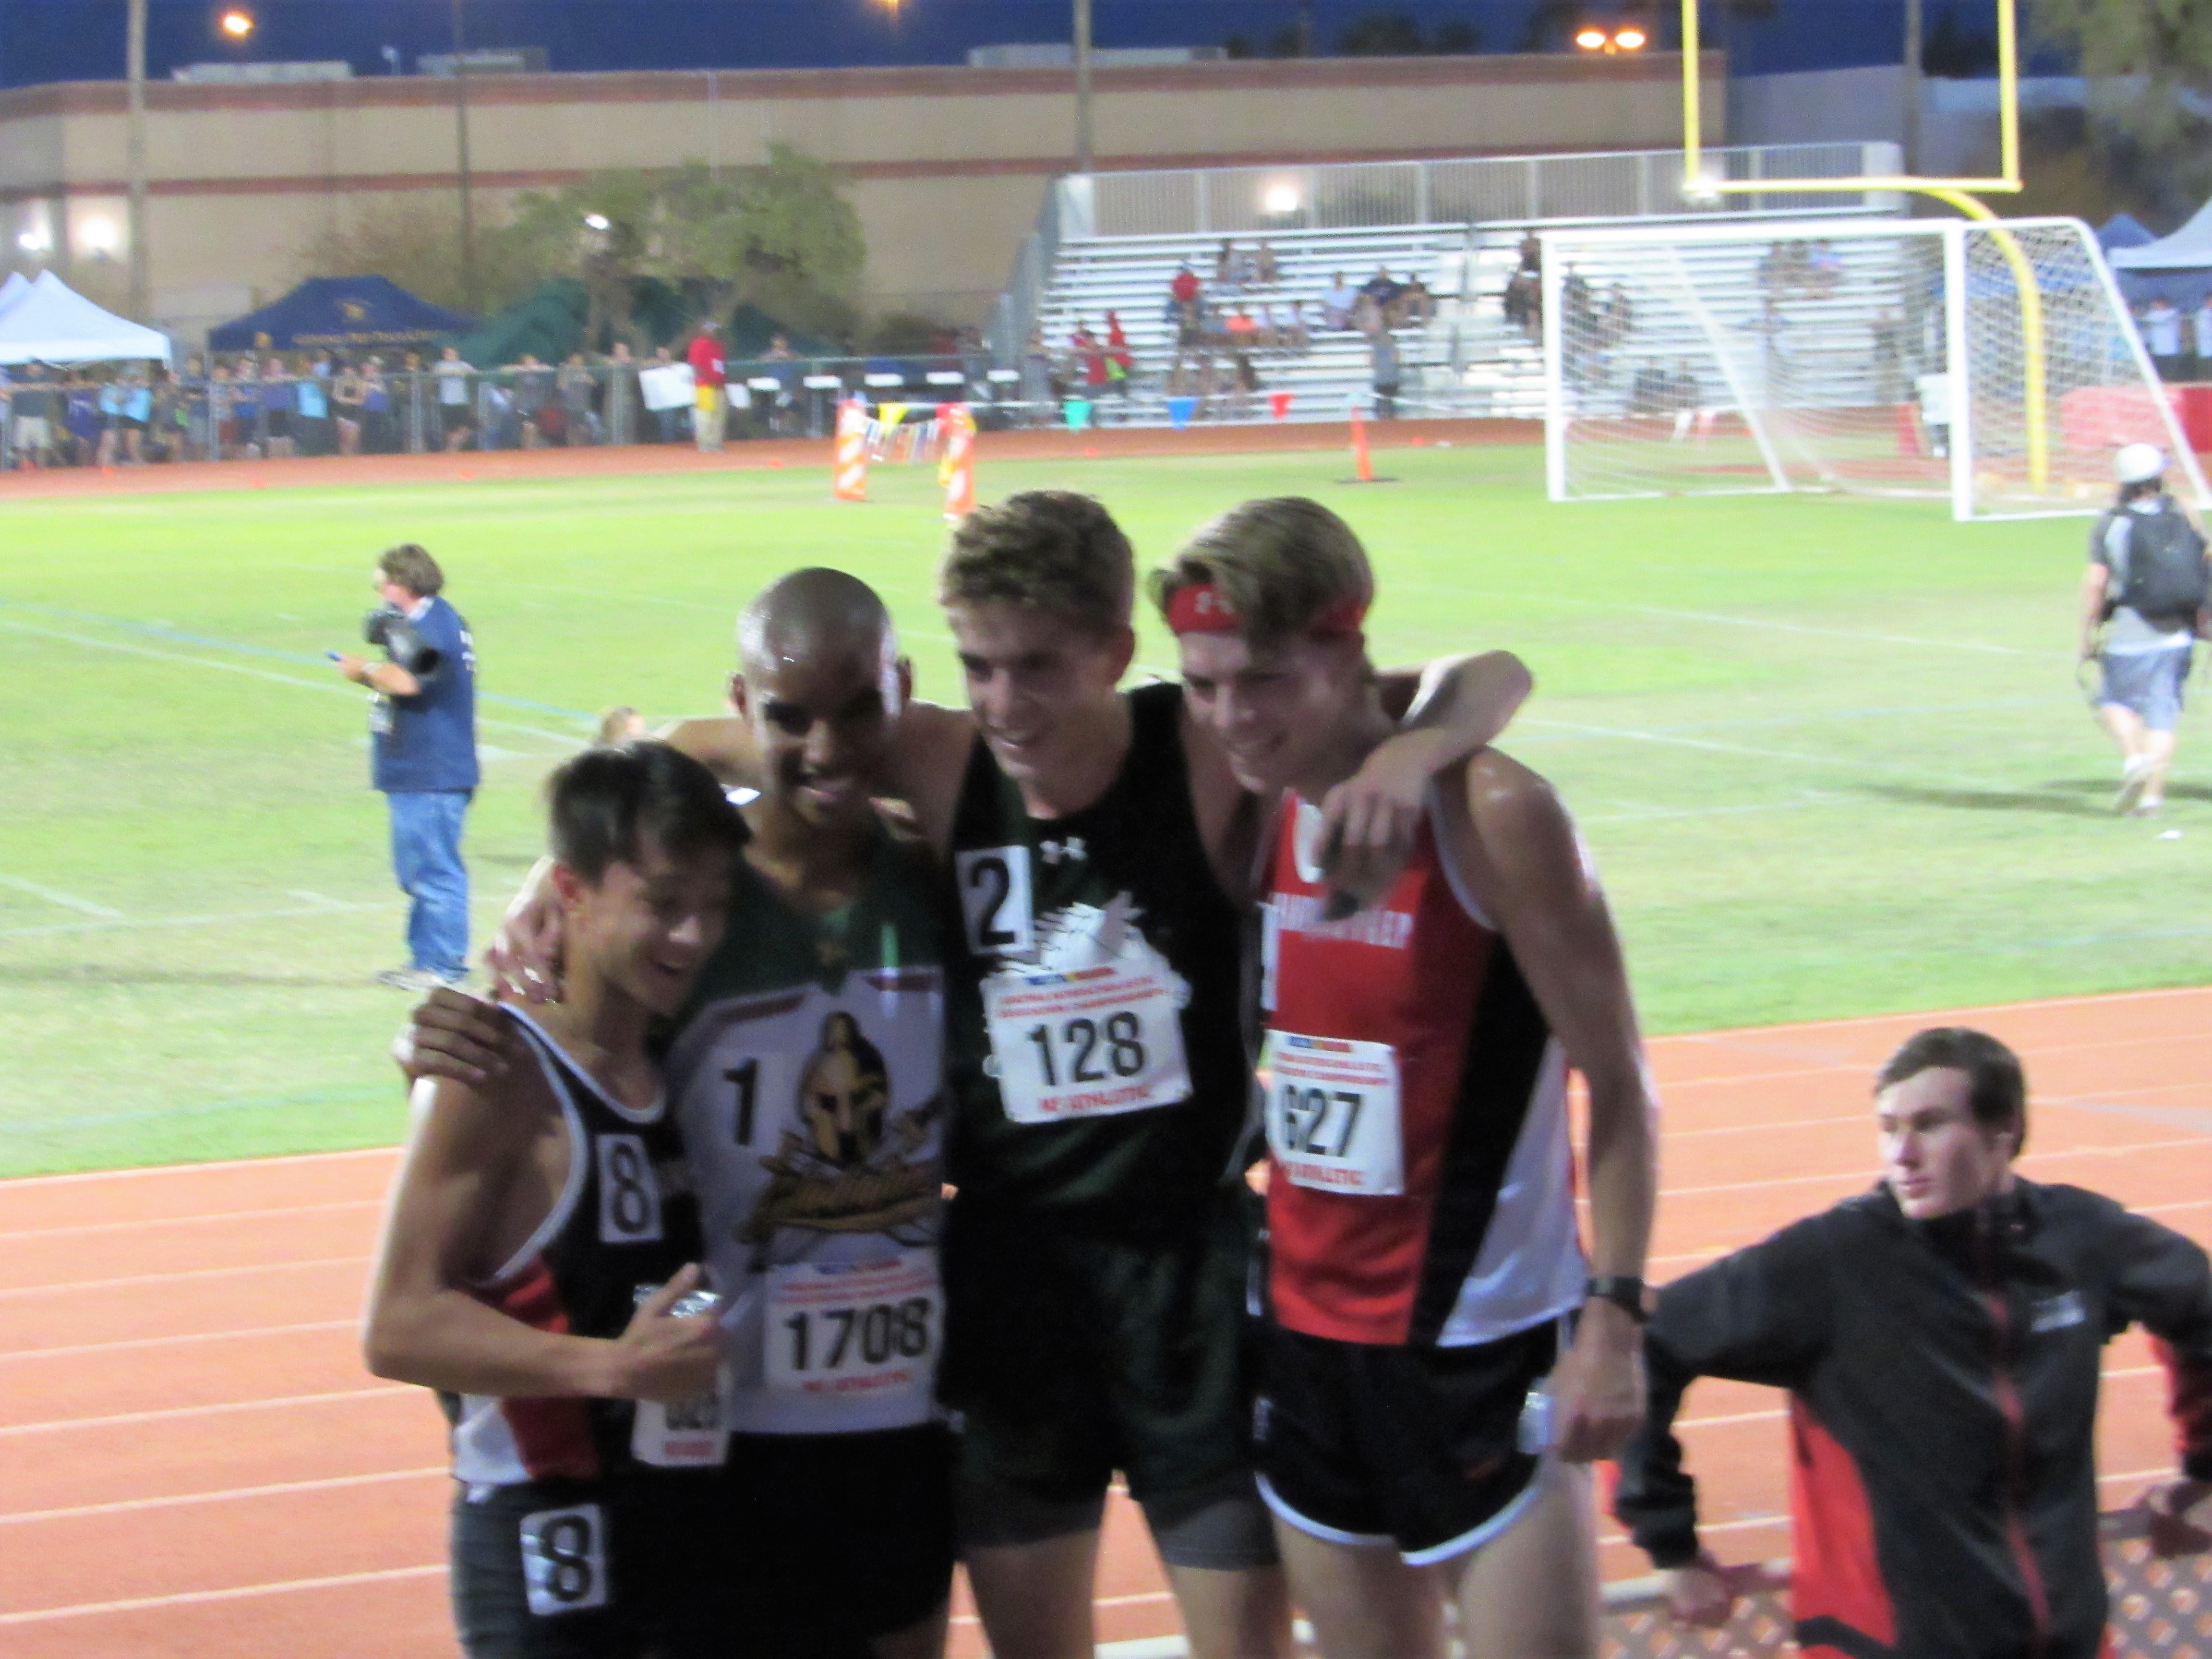 Great Hearts takes top four positions in 3200 meter